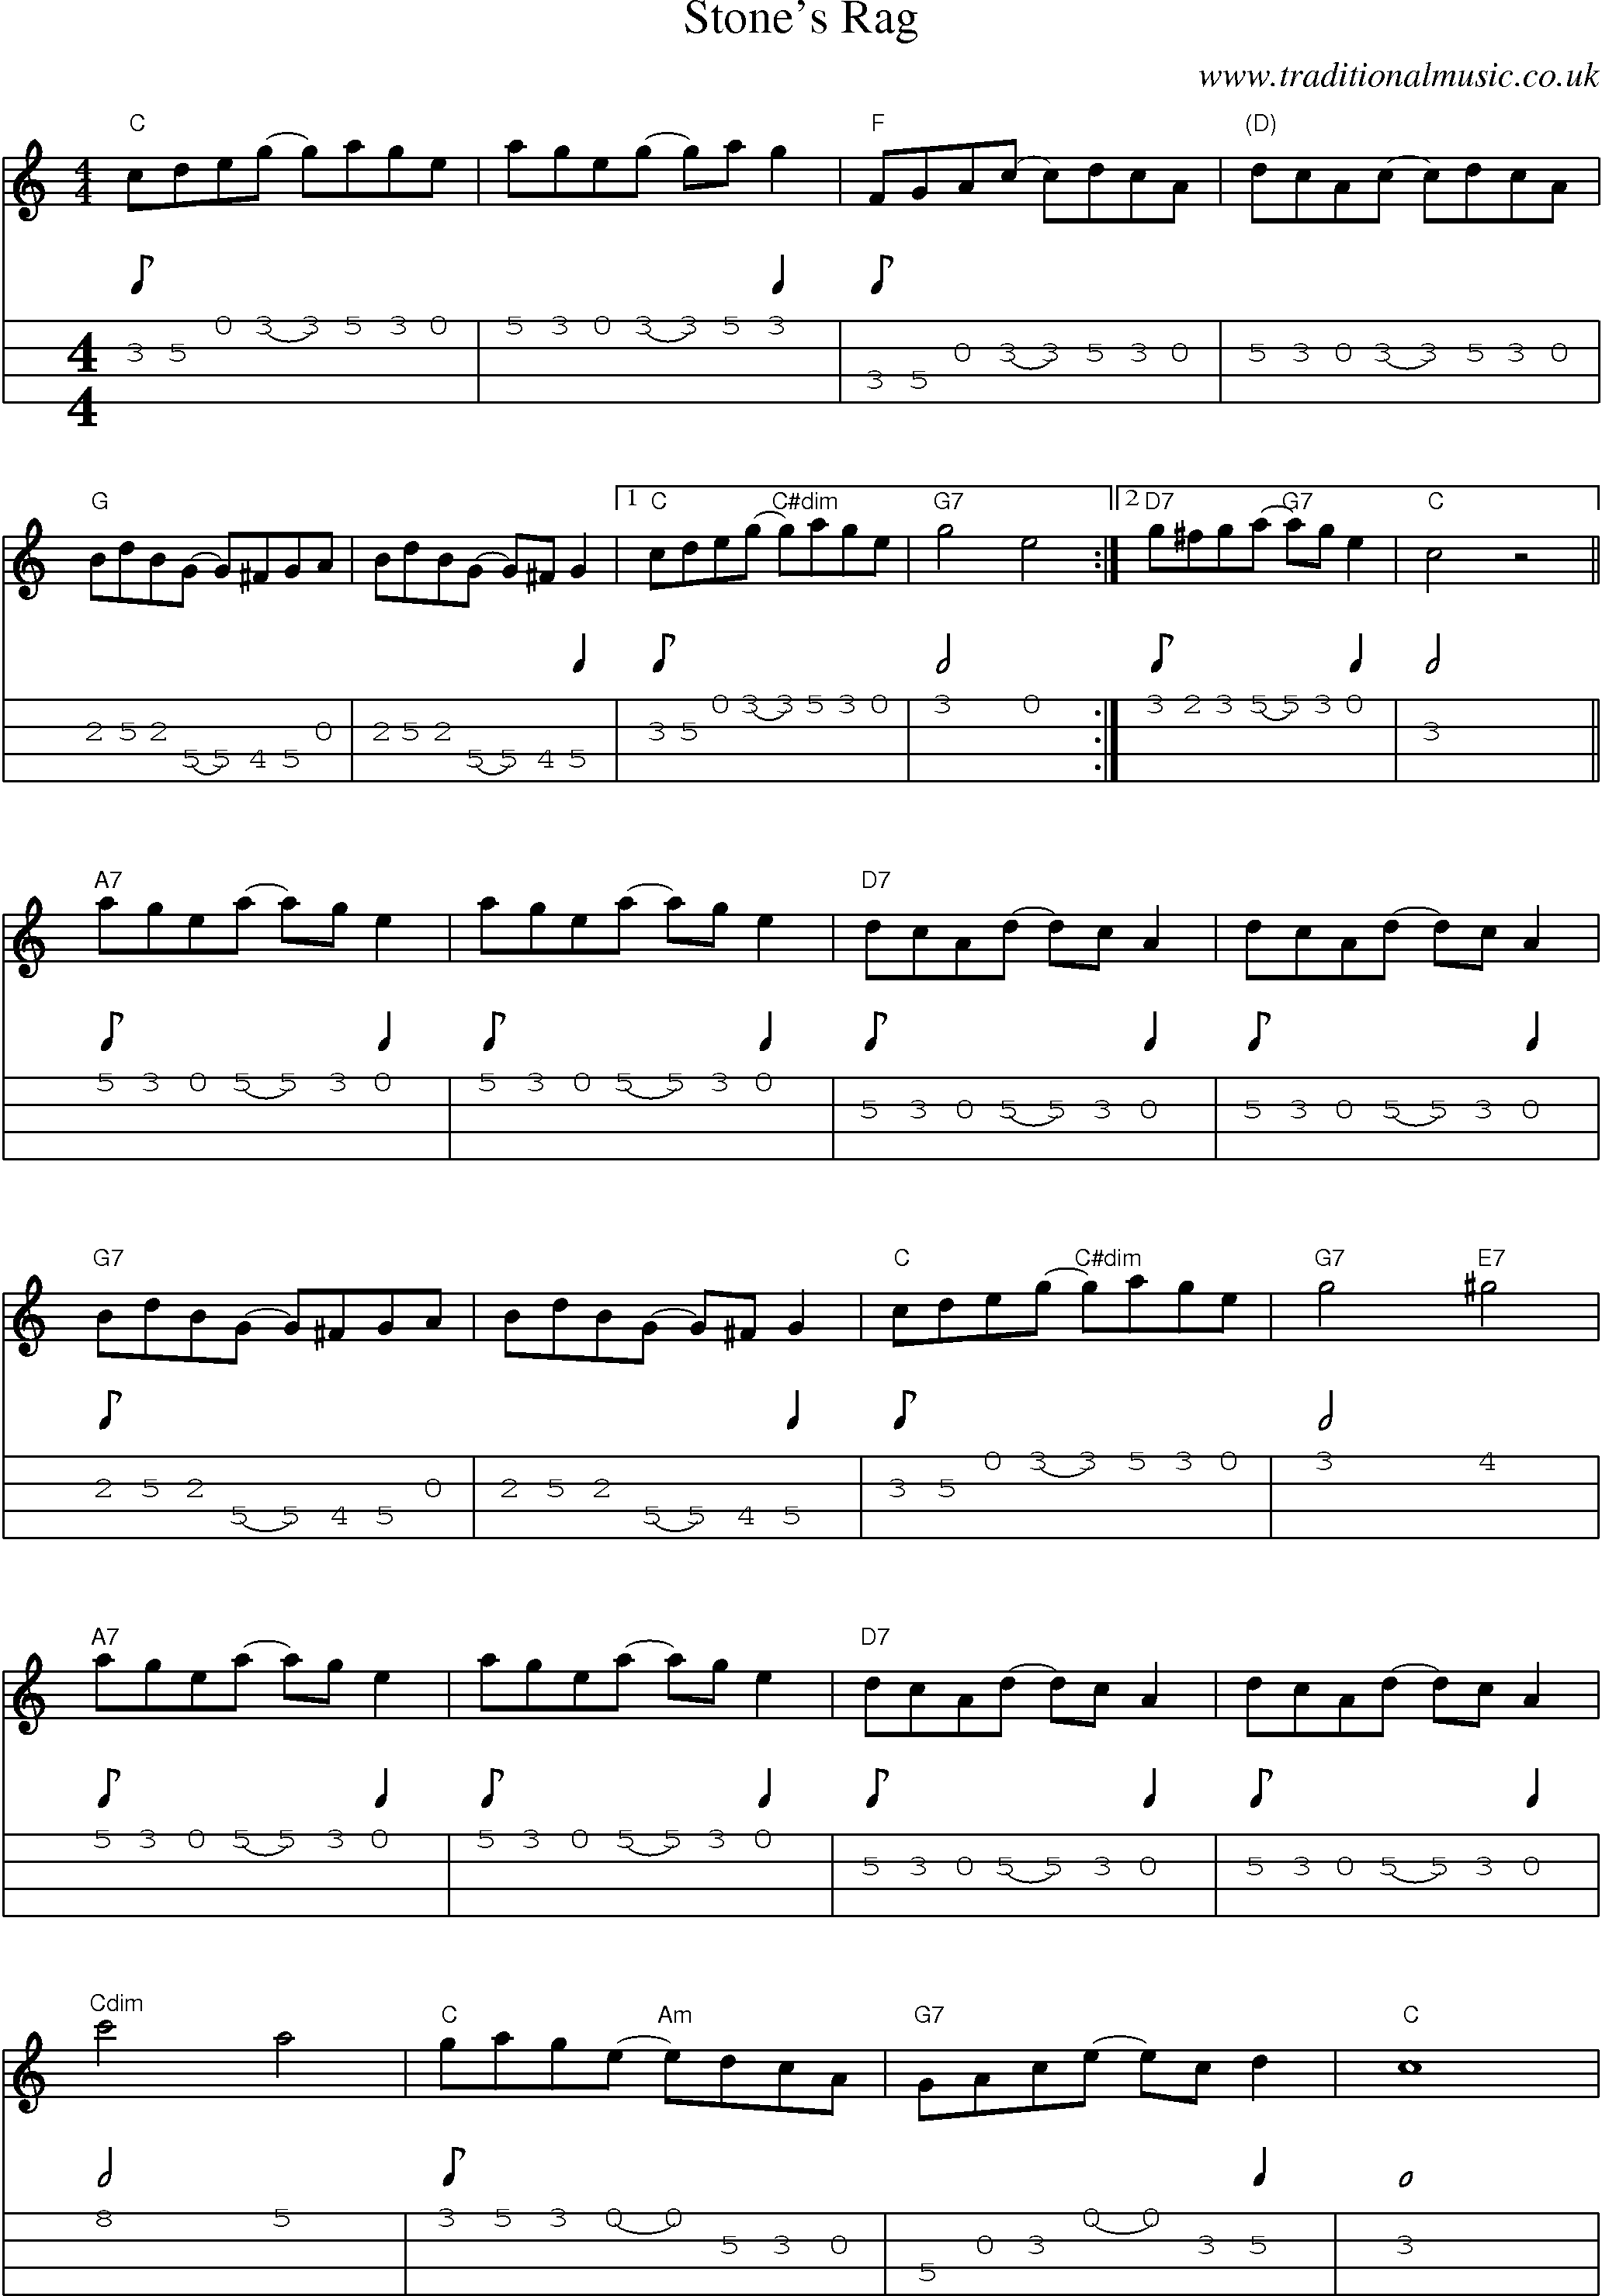 led zeppelin mandolin tabs - Music Search Engine at Search.com